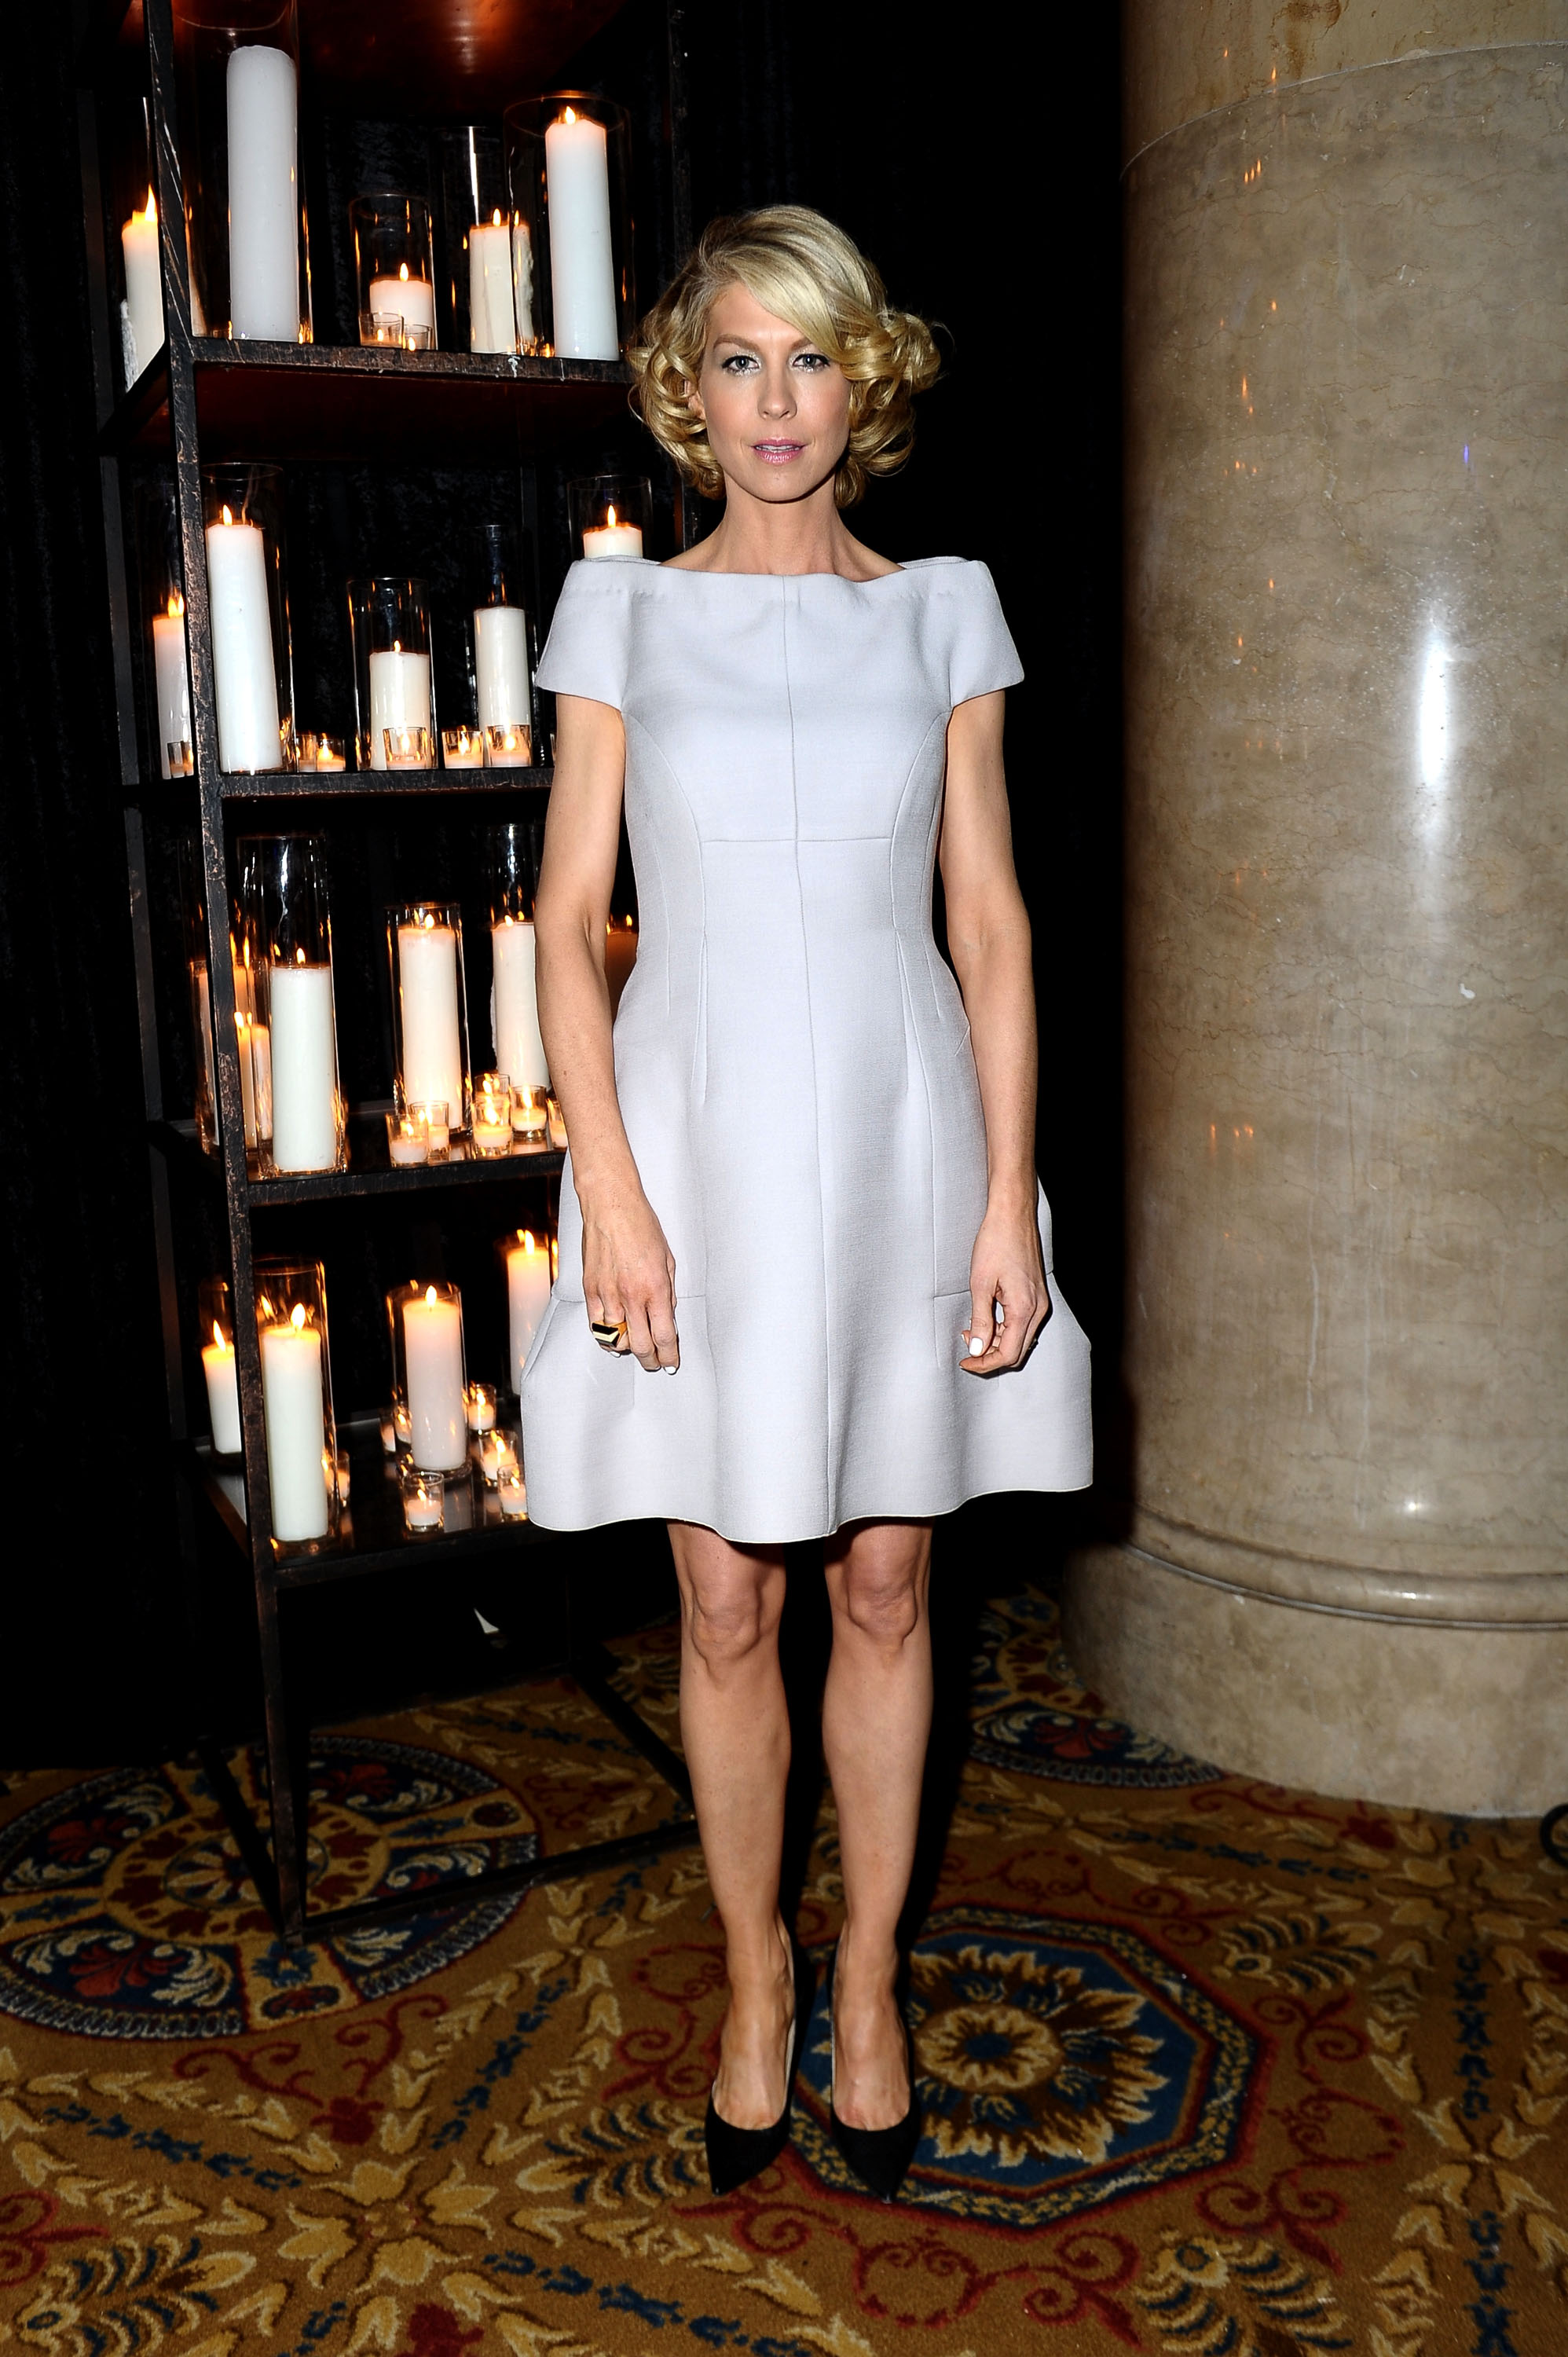 Jenna Elfman went for a cocktail dress when she attended Wednesday night's amfAR New York Gala.